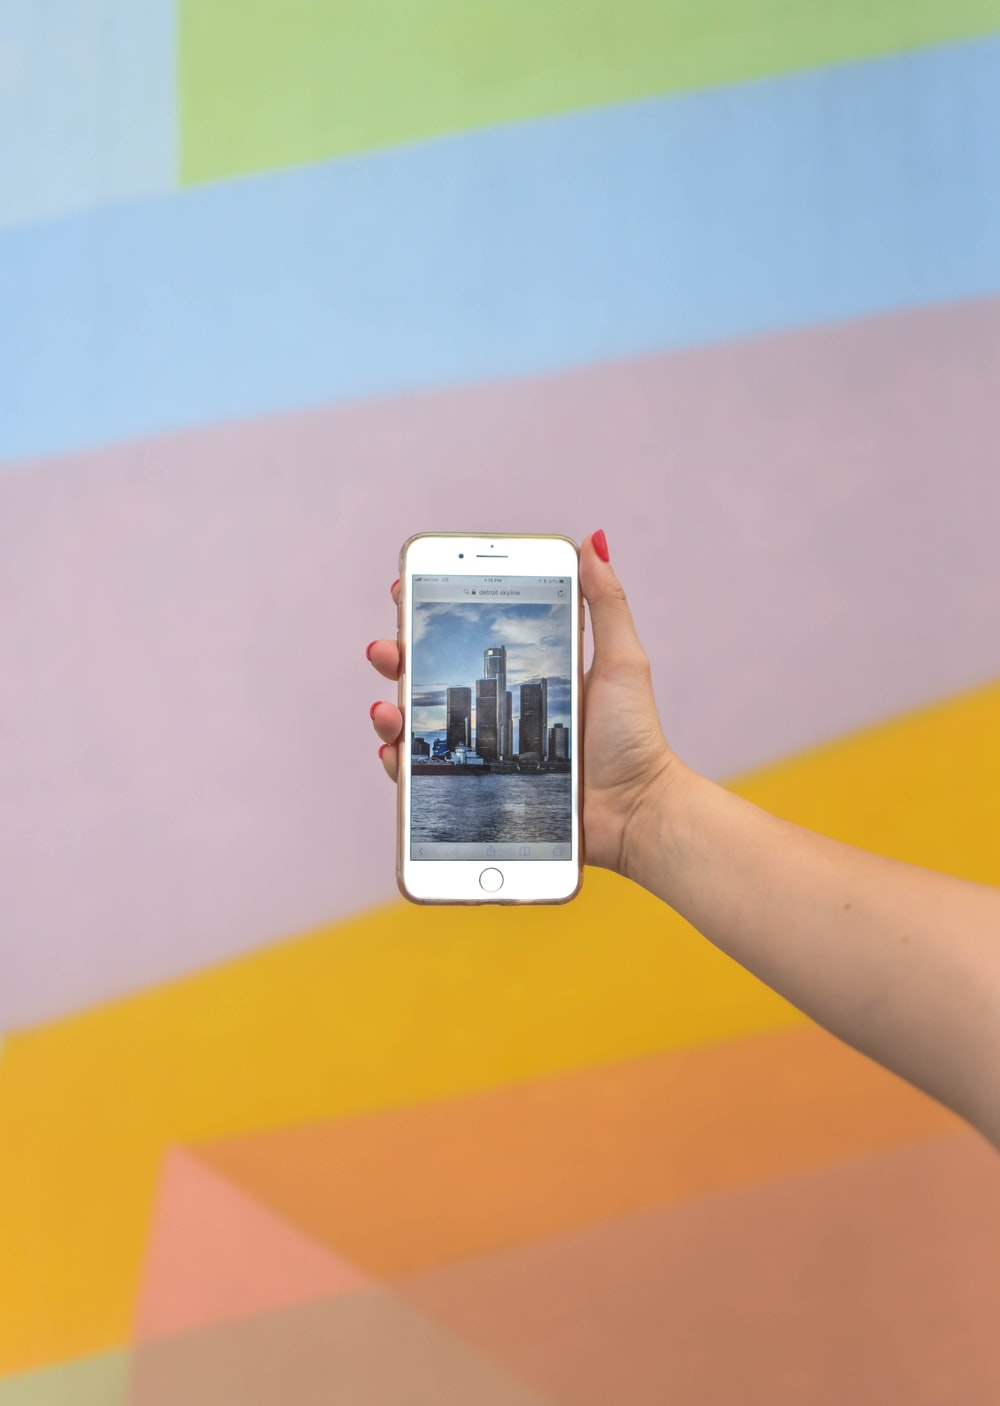 person showing high-rise buildings using iPhone